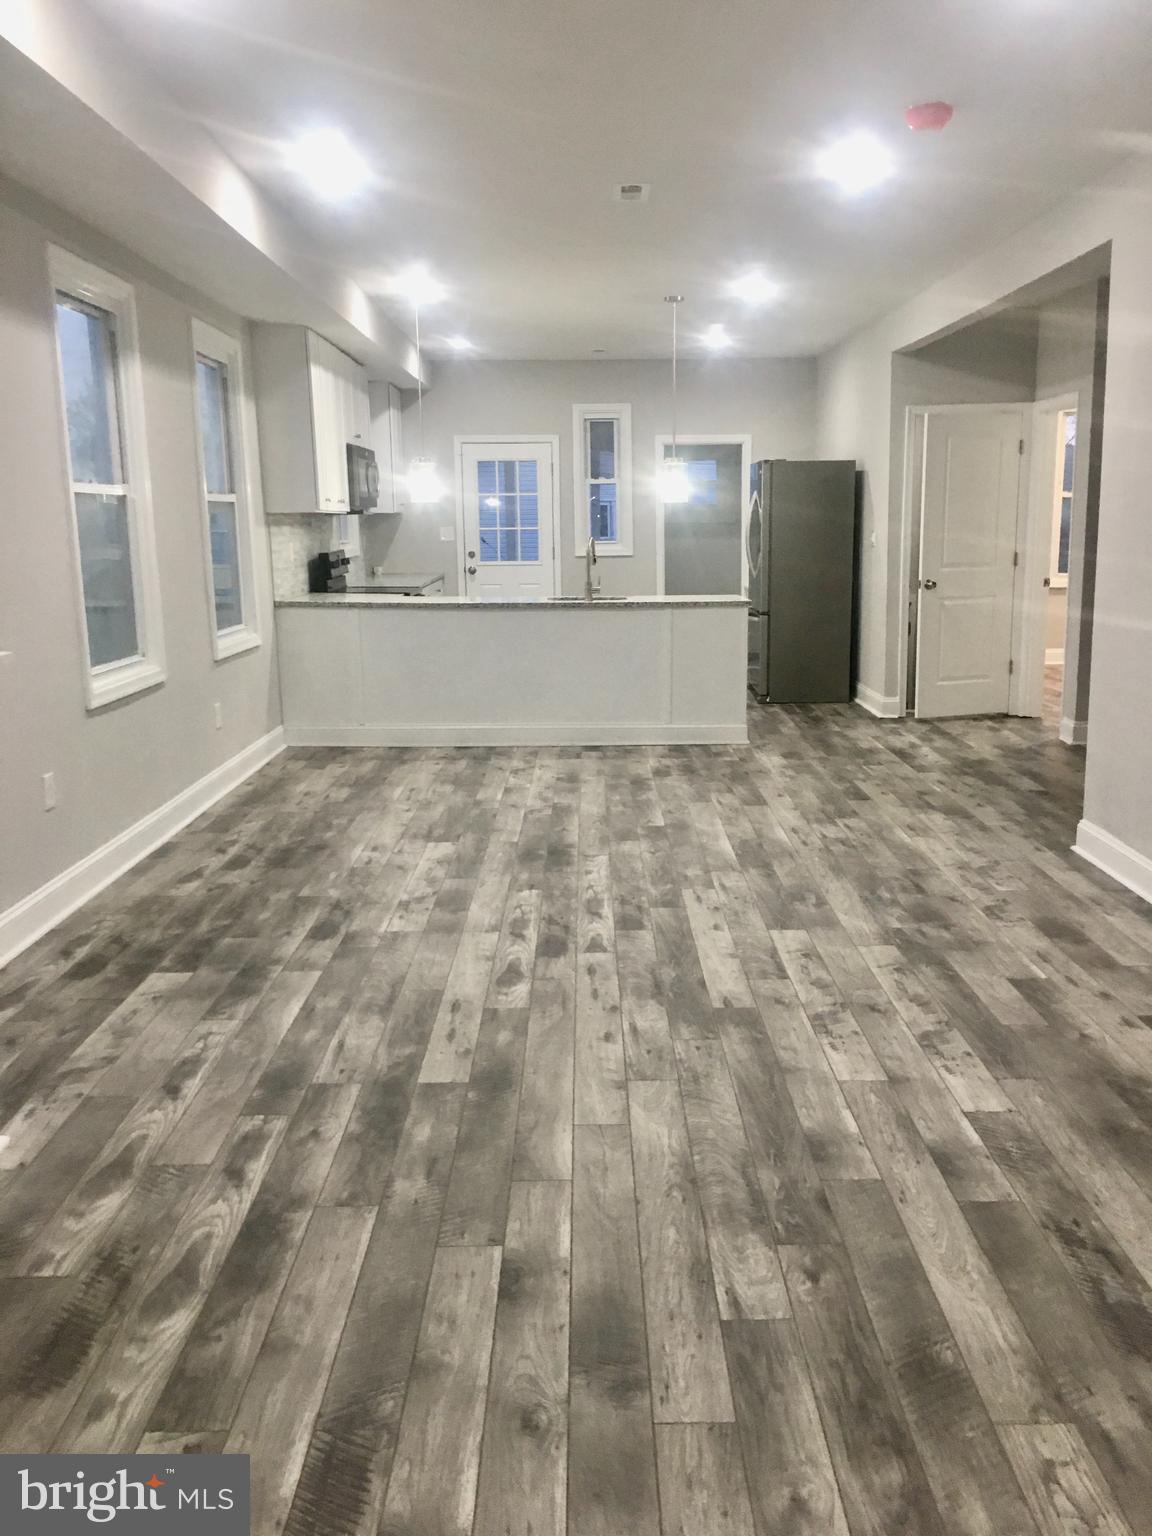 WOW EFFECTS!    (MUST SEE)     Back on the market . Beautiful 6 BR, 4 BH Newly Remodeled.  Spacious, Opened concept main level with 2 BR. Upstairs with 2 masters BR, 2 BH.       Basement 2 BR. (Over 36,000 SF)  =  Largest house in the street. Granite kitchen top & BH. Sun-filled Rooms, Walk-in Closets. Fenced backyard, Deck of the kitchen, Garage. Nice, quiet neighborhood.   Next to Elementary/Mid school. Simply GORGEOUS home you can be Proud of and Enjoy for years to come!